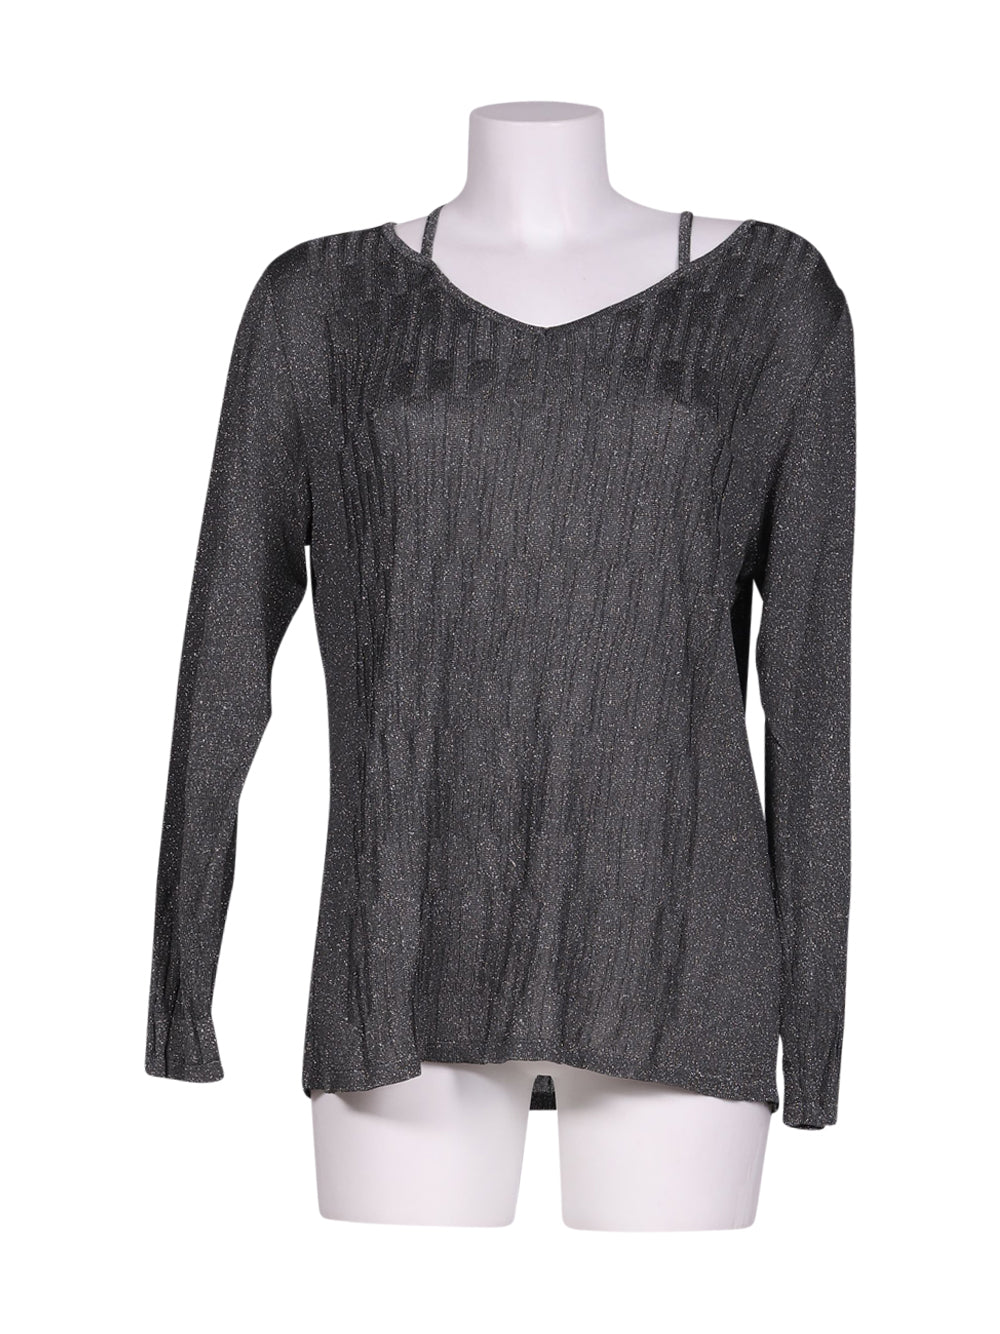 Front photo of Preloved giam Grey Woman's sweater - size 10/M